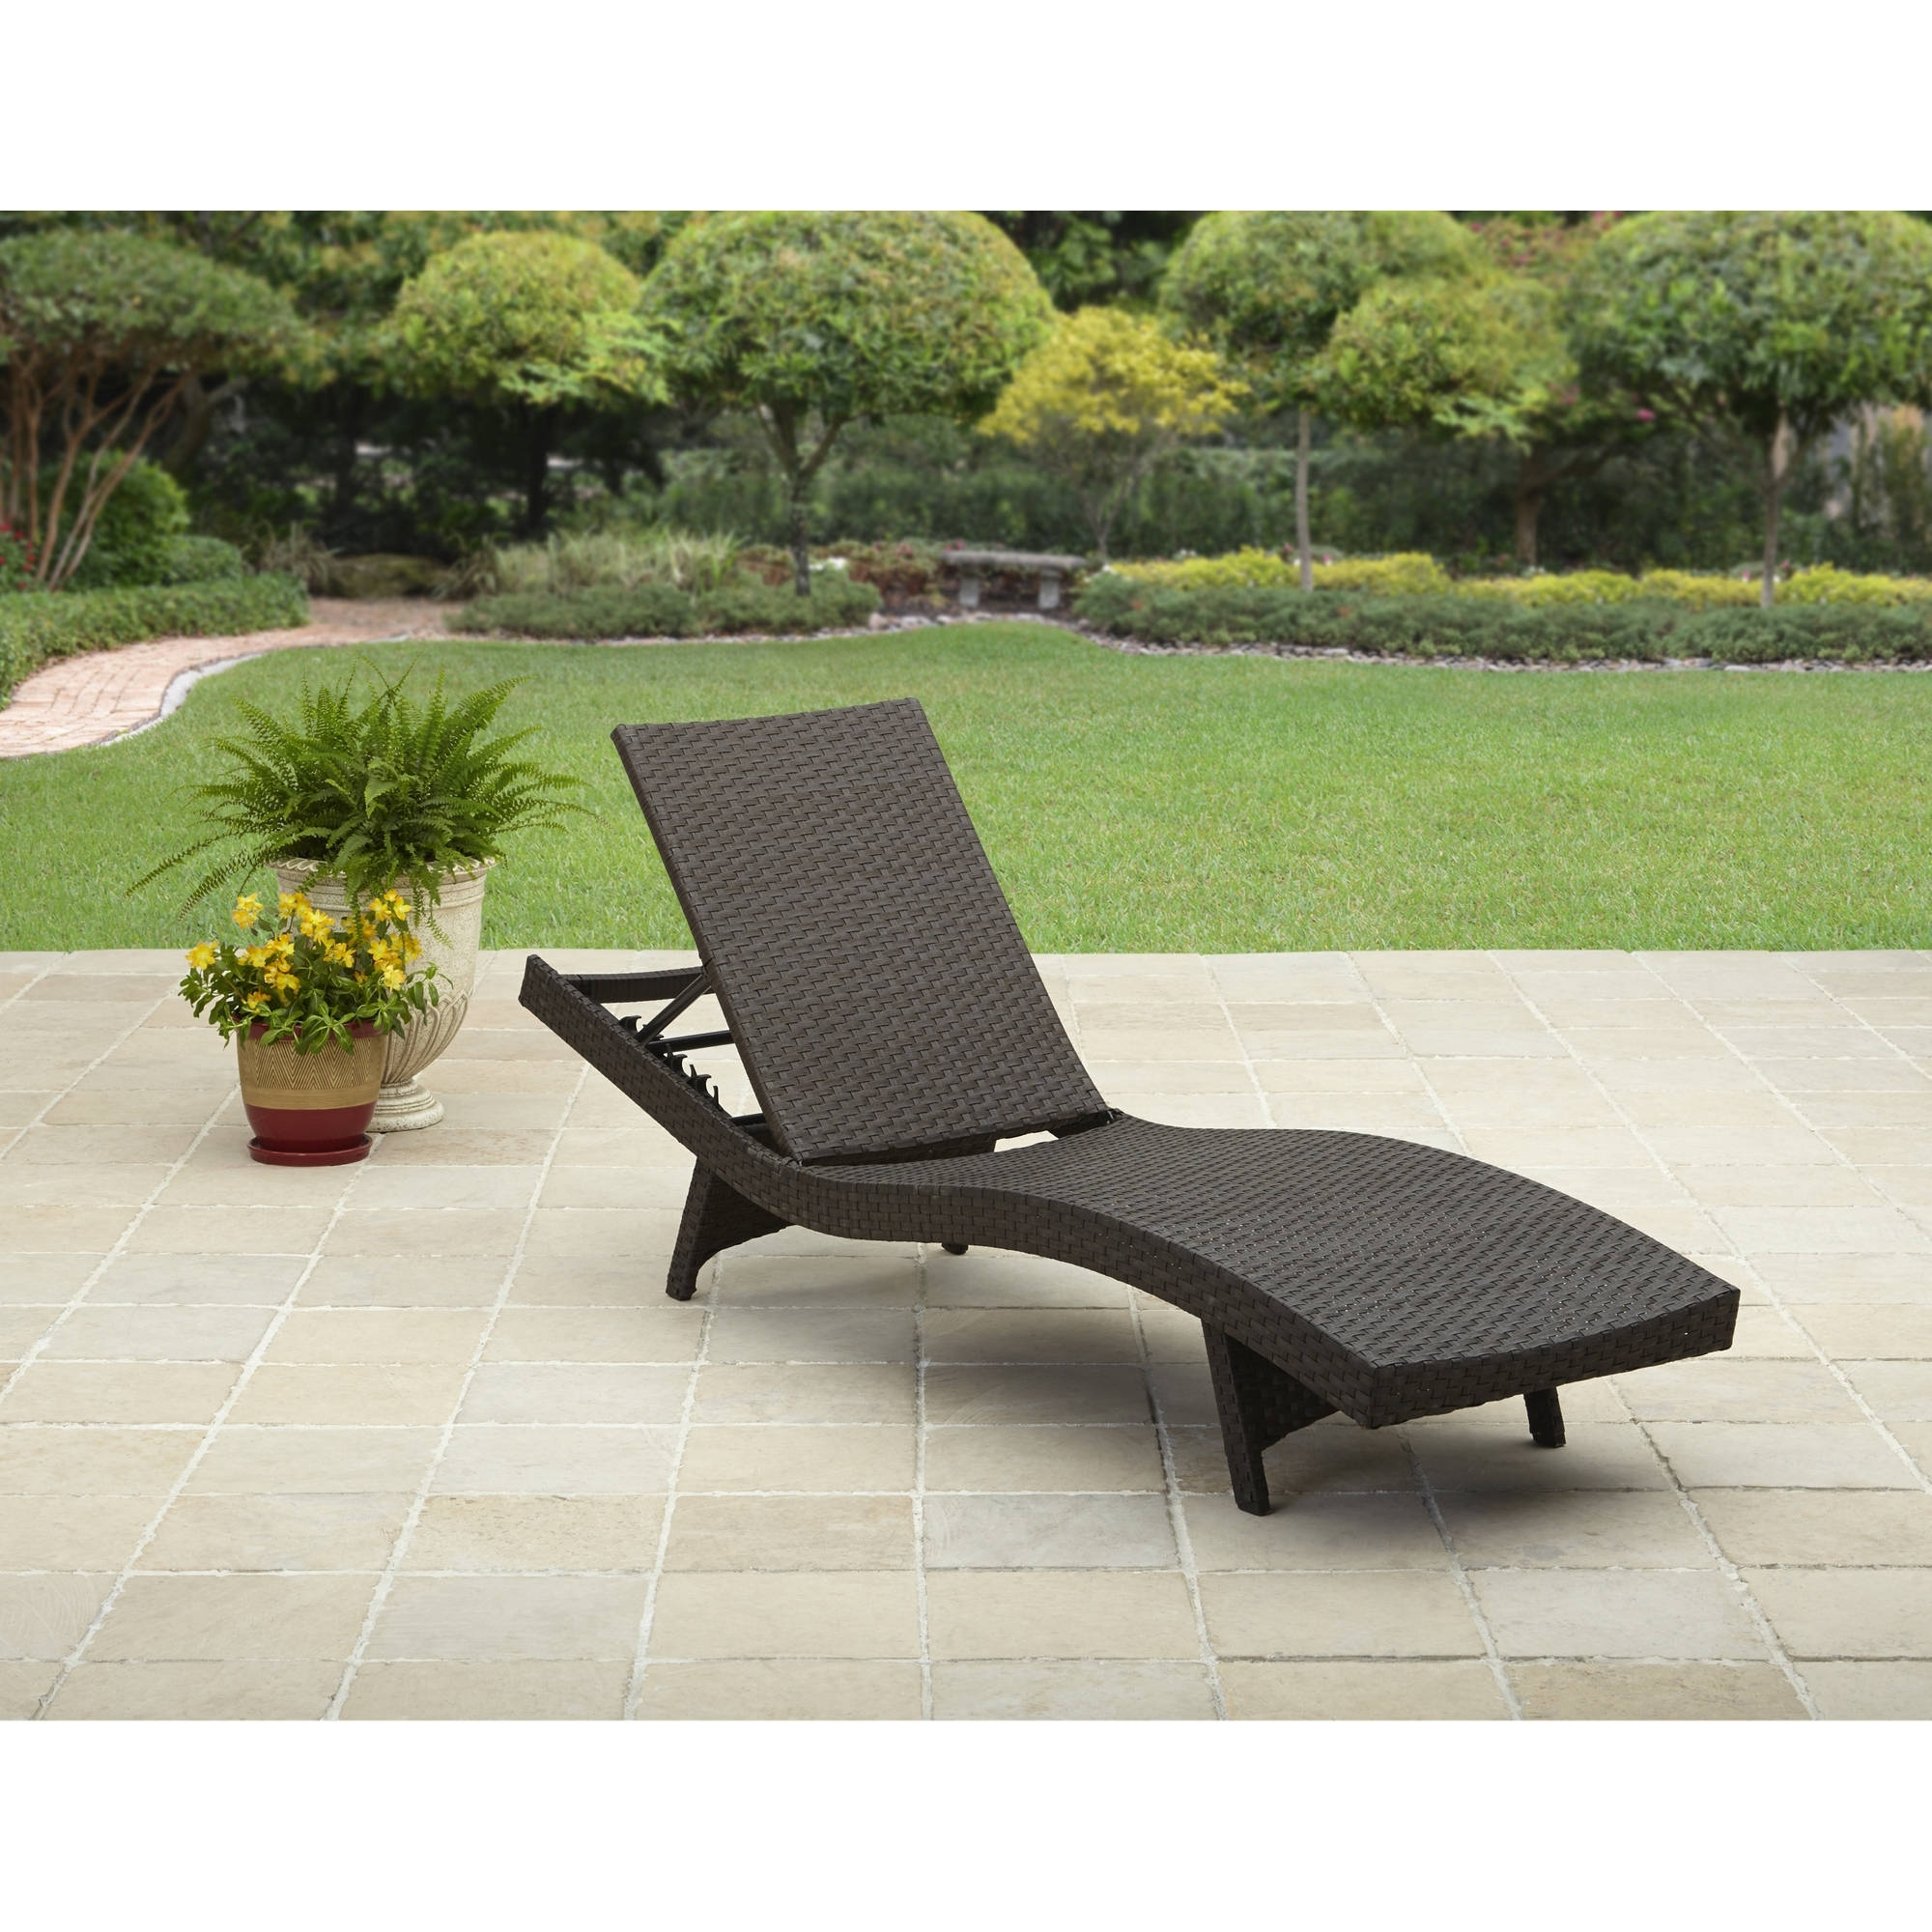 Better Homes And Gardens Avila Beach Chaise – Walmart Intended For Popular Chaise Lounge Chairs At Walmart (View 3 of 15)